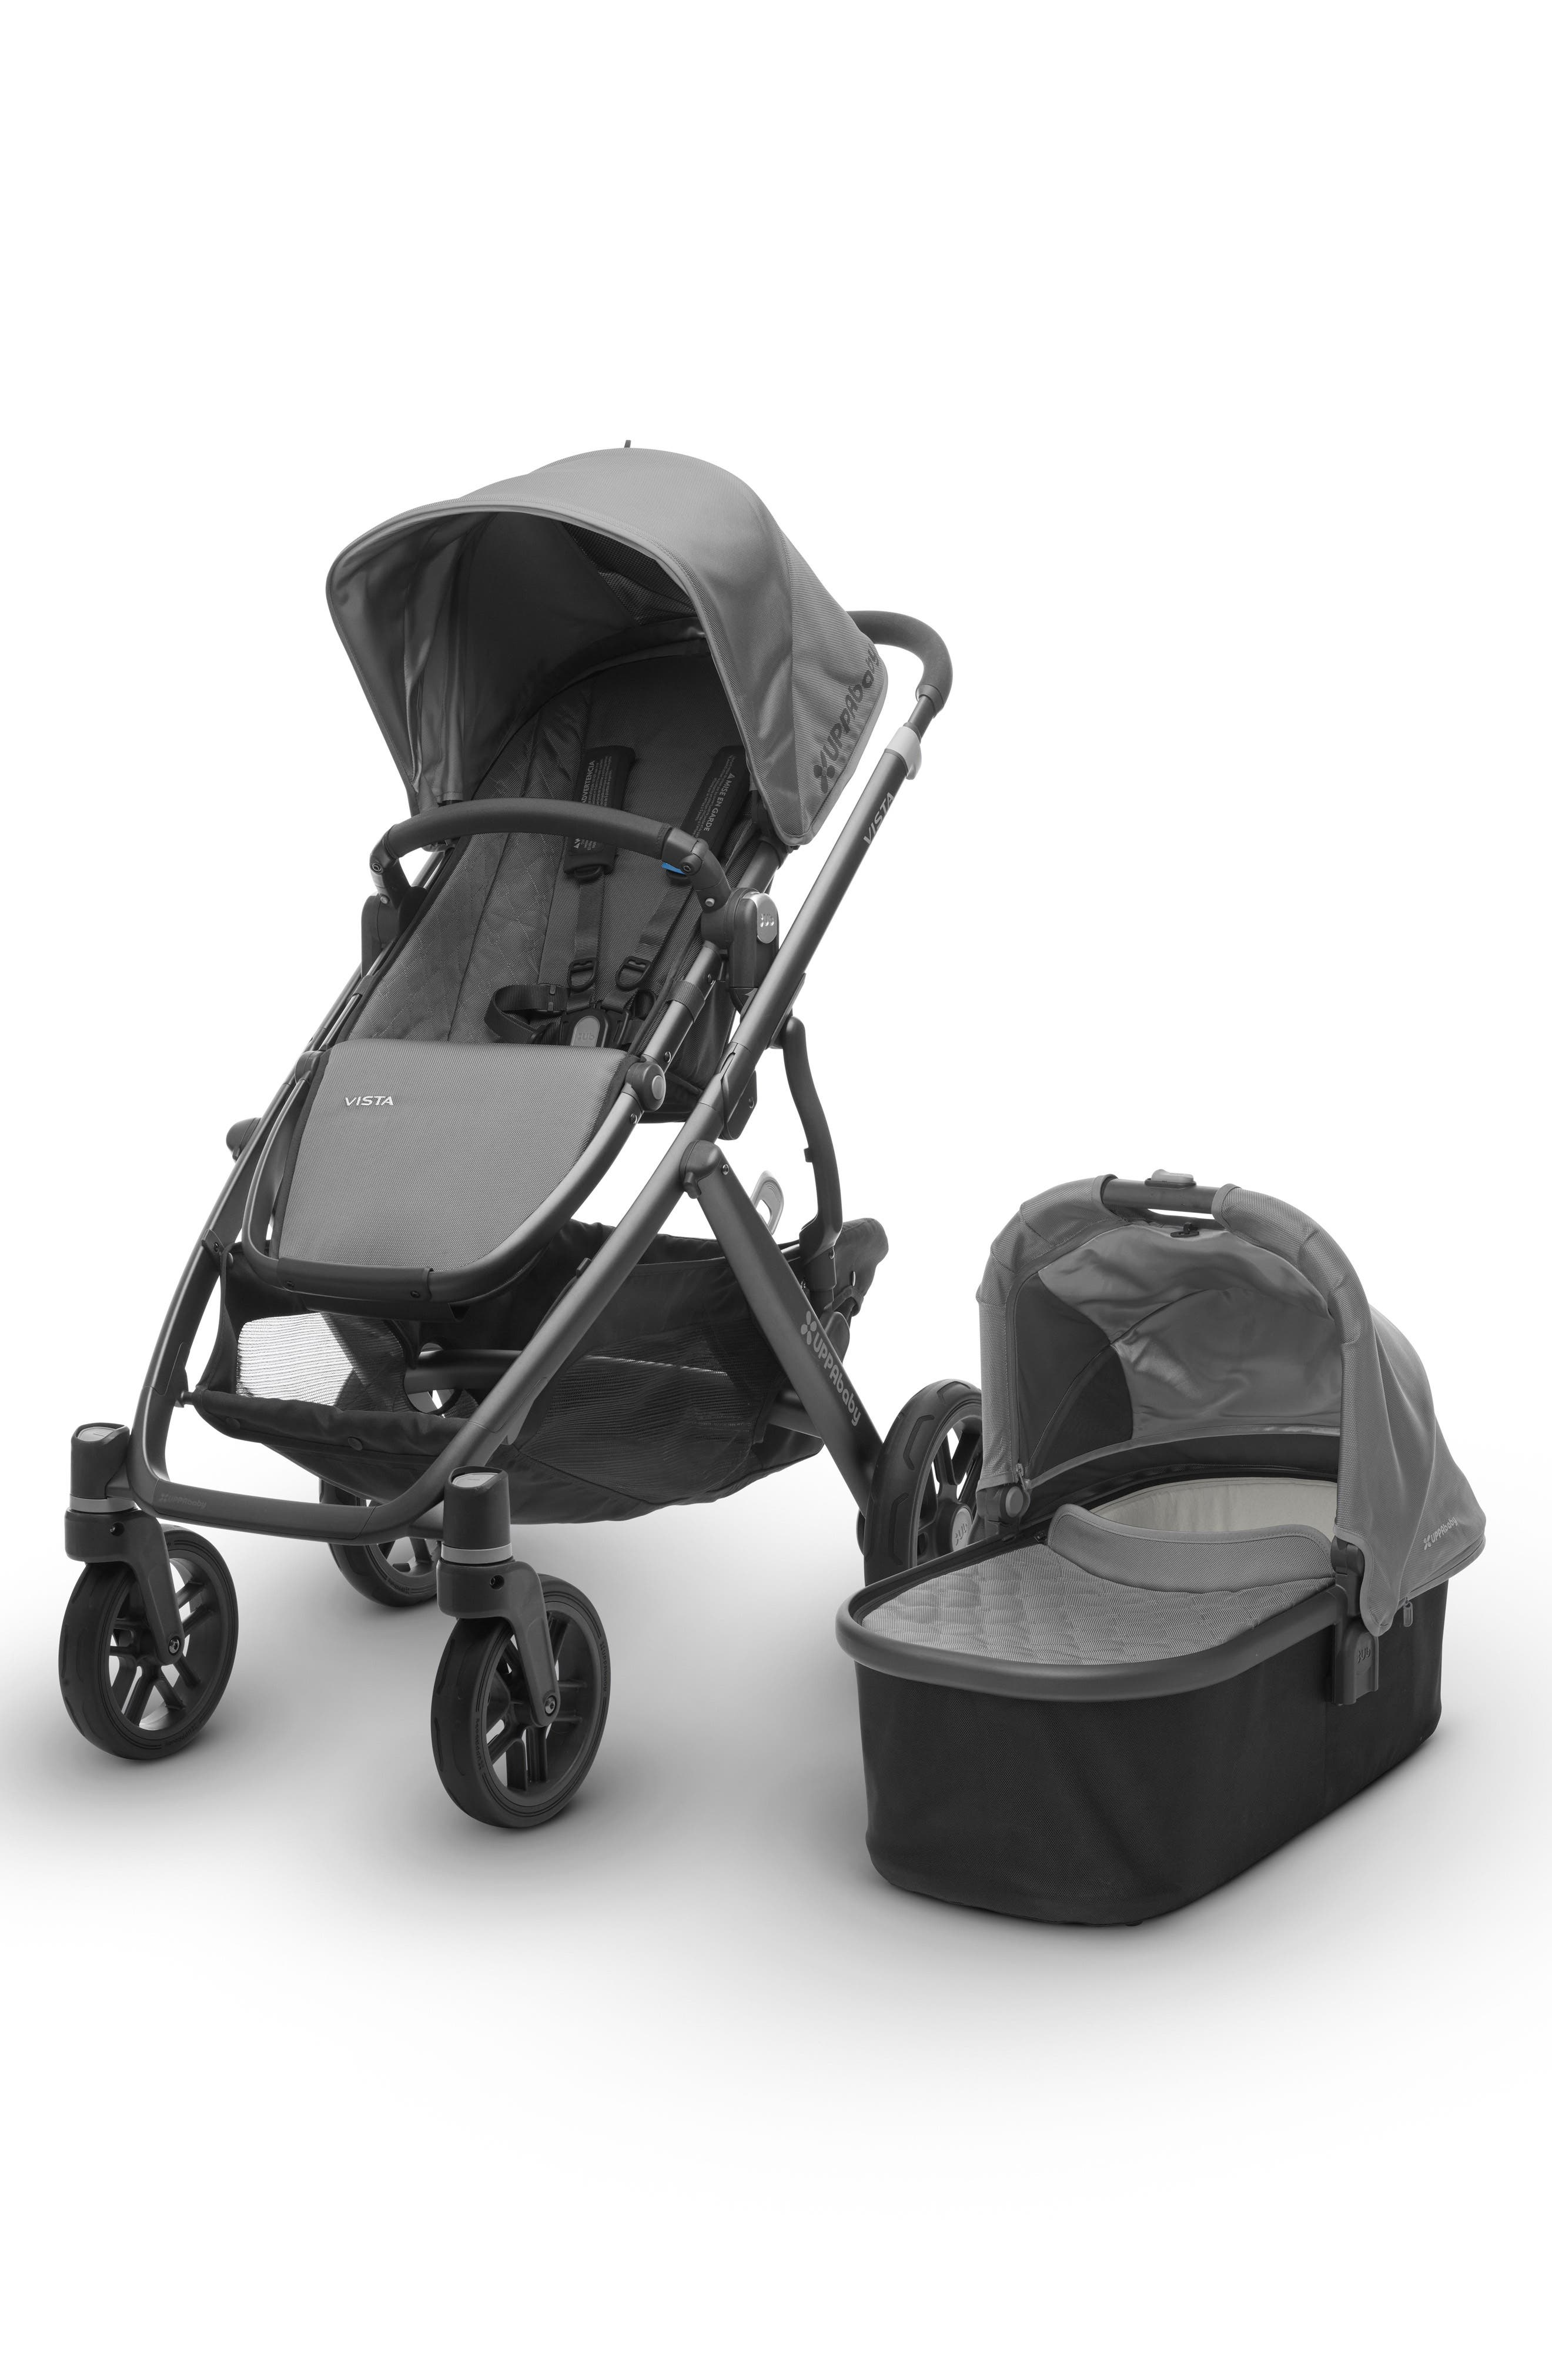 uppababy 2017 vista aluminum frame convertible stroller with bassinet toddler seat on sale at. Black Bedroom Furniture Sets. Home Design Ideas